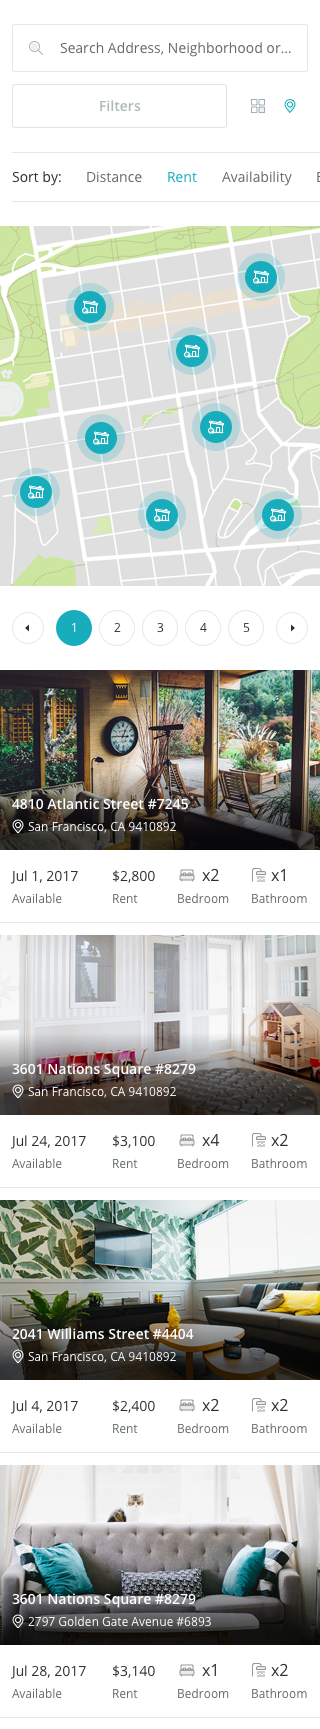 Discover properties mobile 1